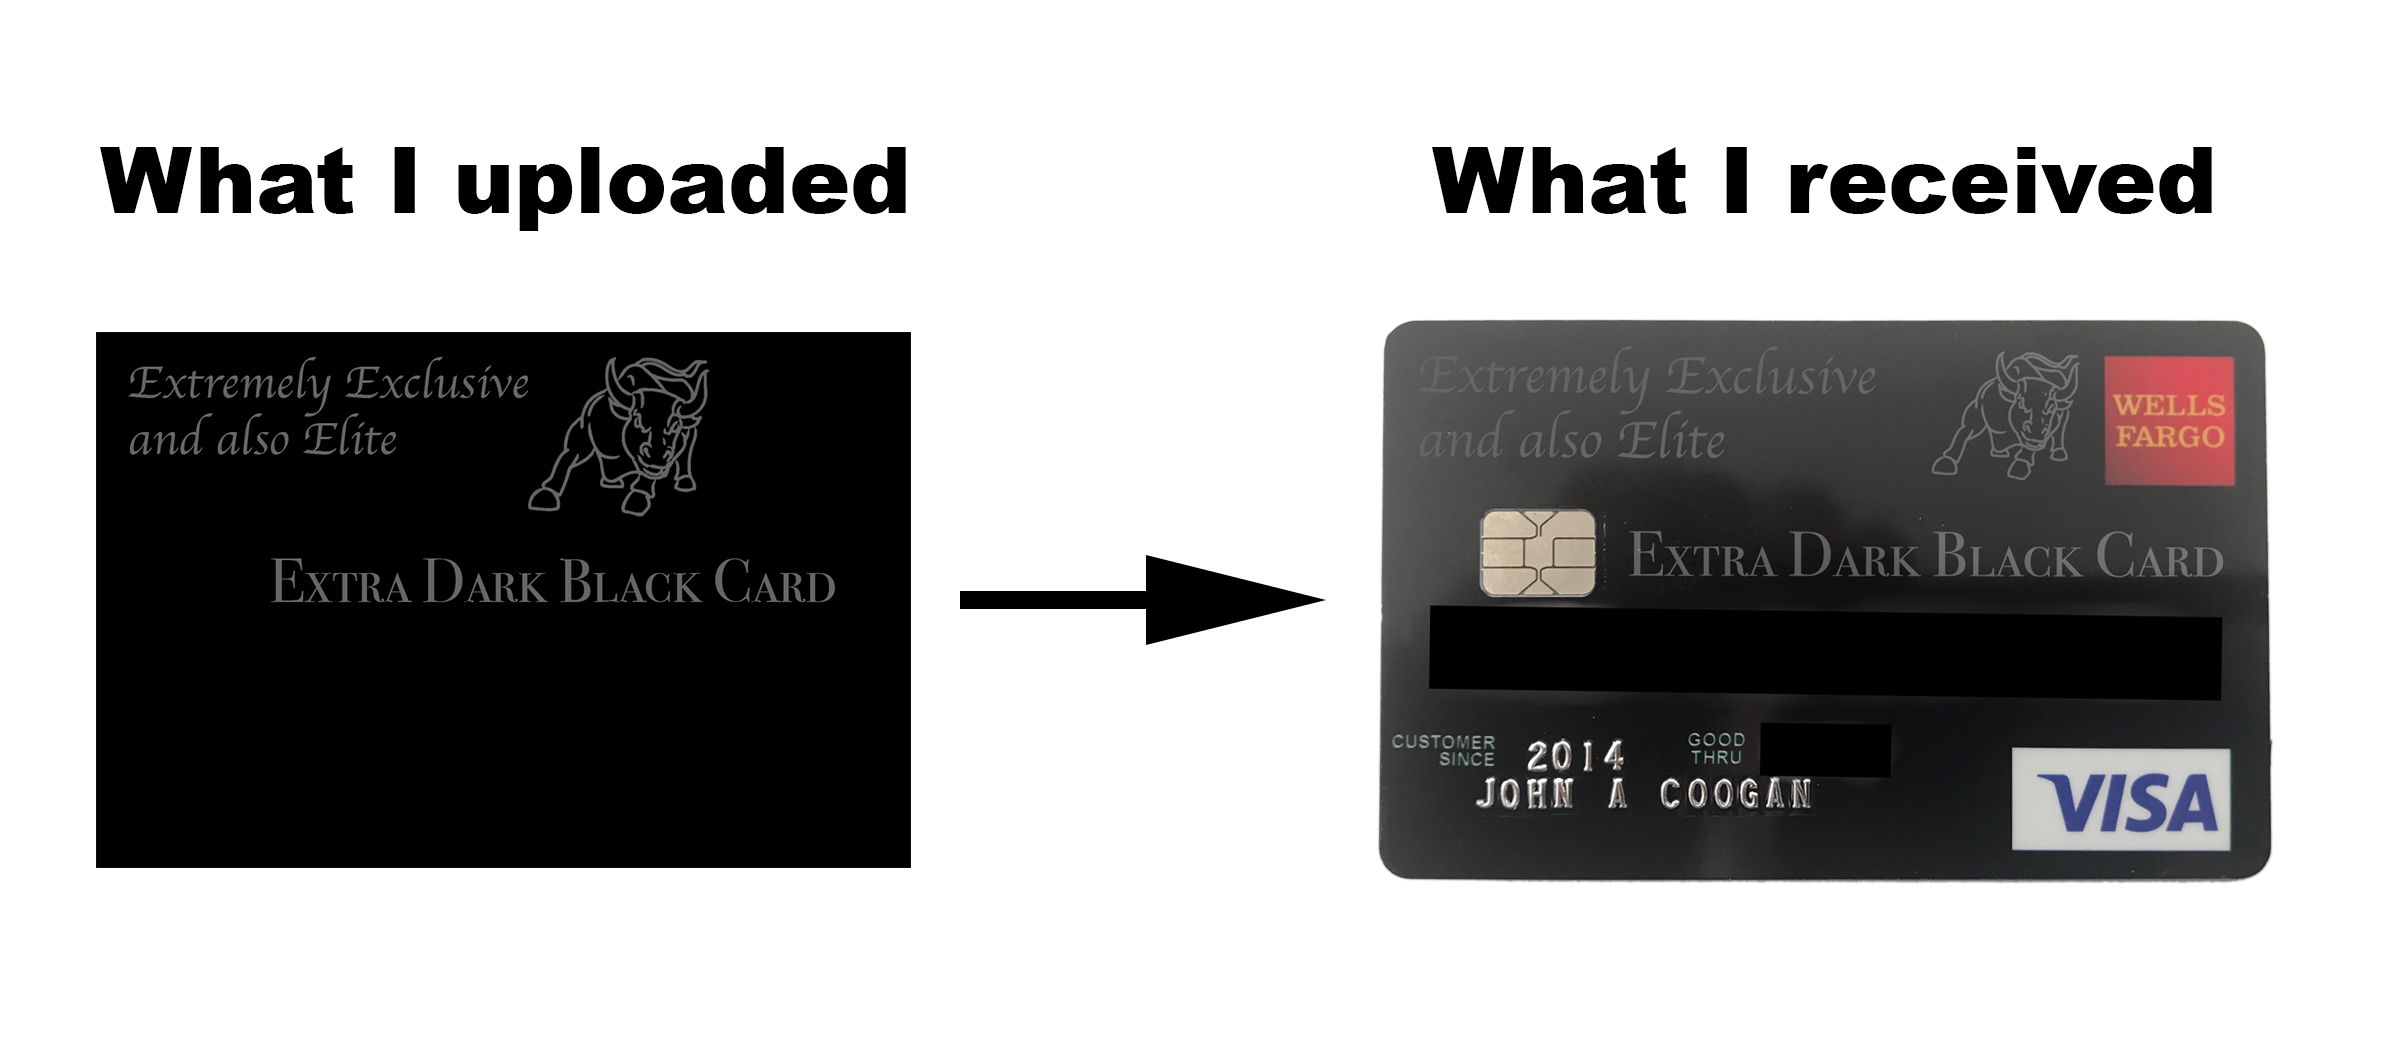 Best Credit Card Ever: The Extra Dark Black Card  by John Coogan